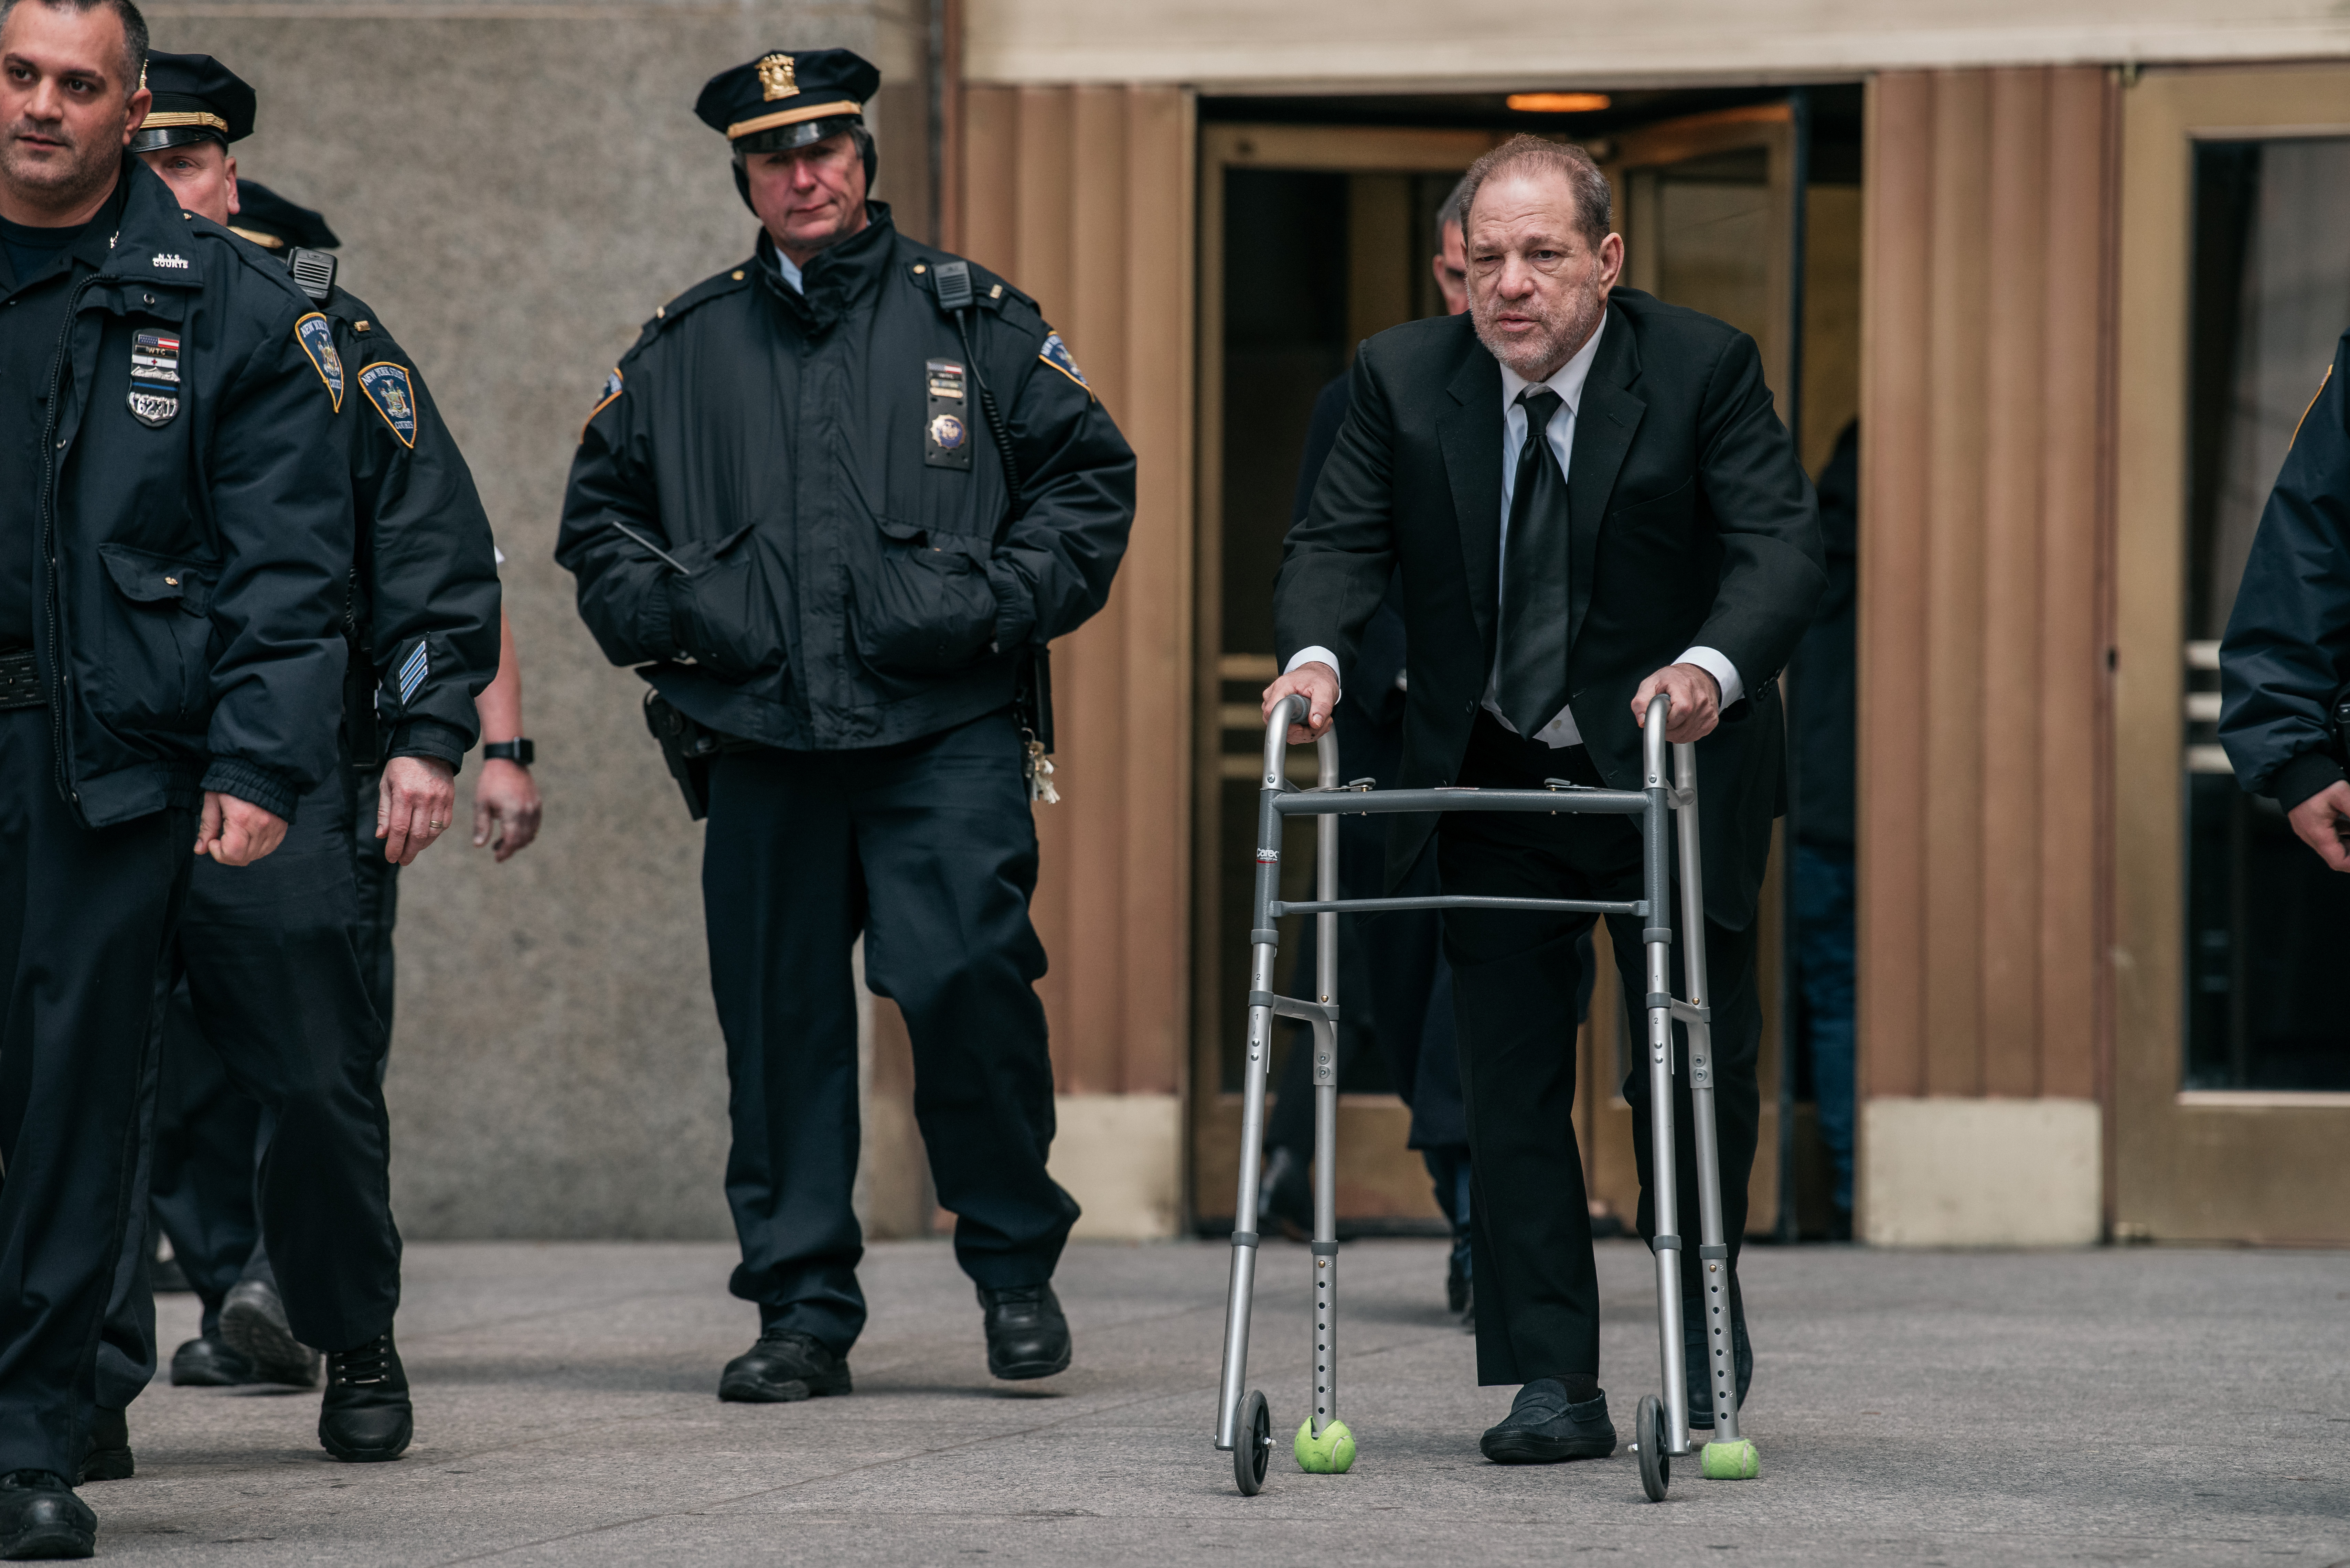 Harvey Weinstein leaves New York City Criminal Court on January 16, 2020 in New York City. Weinstein, a movie producer whose alleged sexual misconduct helped spark the #MeToo movement, pleaded not-guilty on five counts of rape and sexual assault against two unnamed women and faces a possible life sentence in prison. (Photo by Scott Heins/Getty Images)